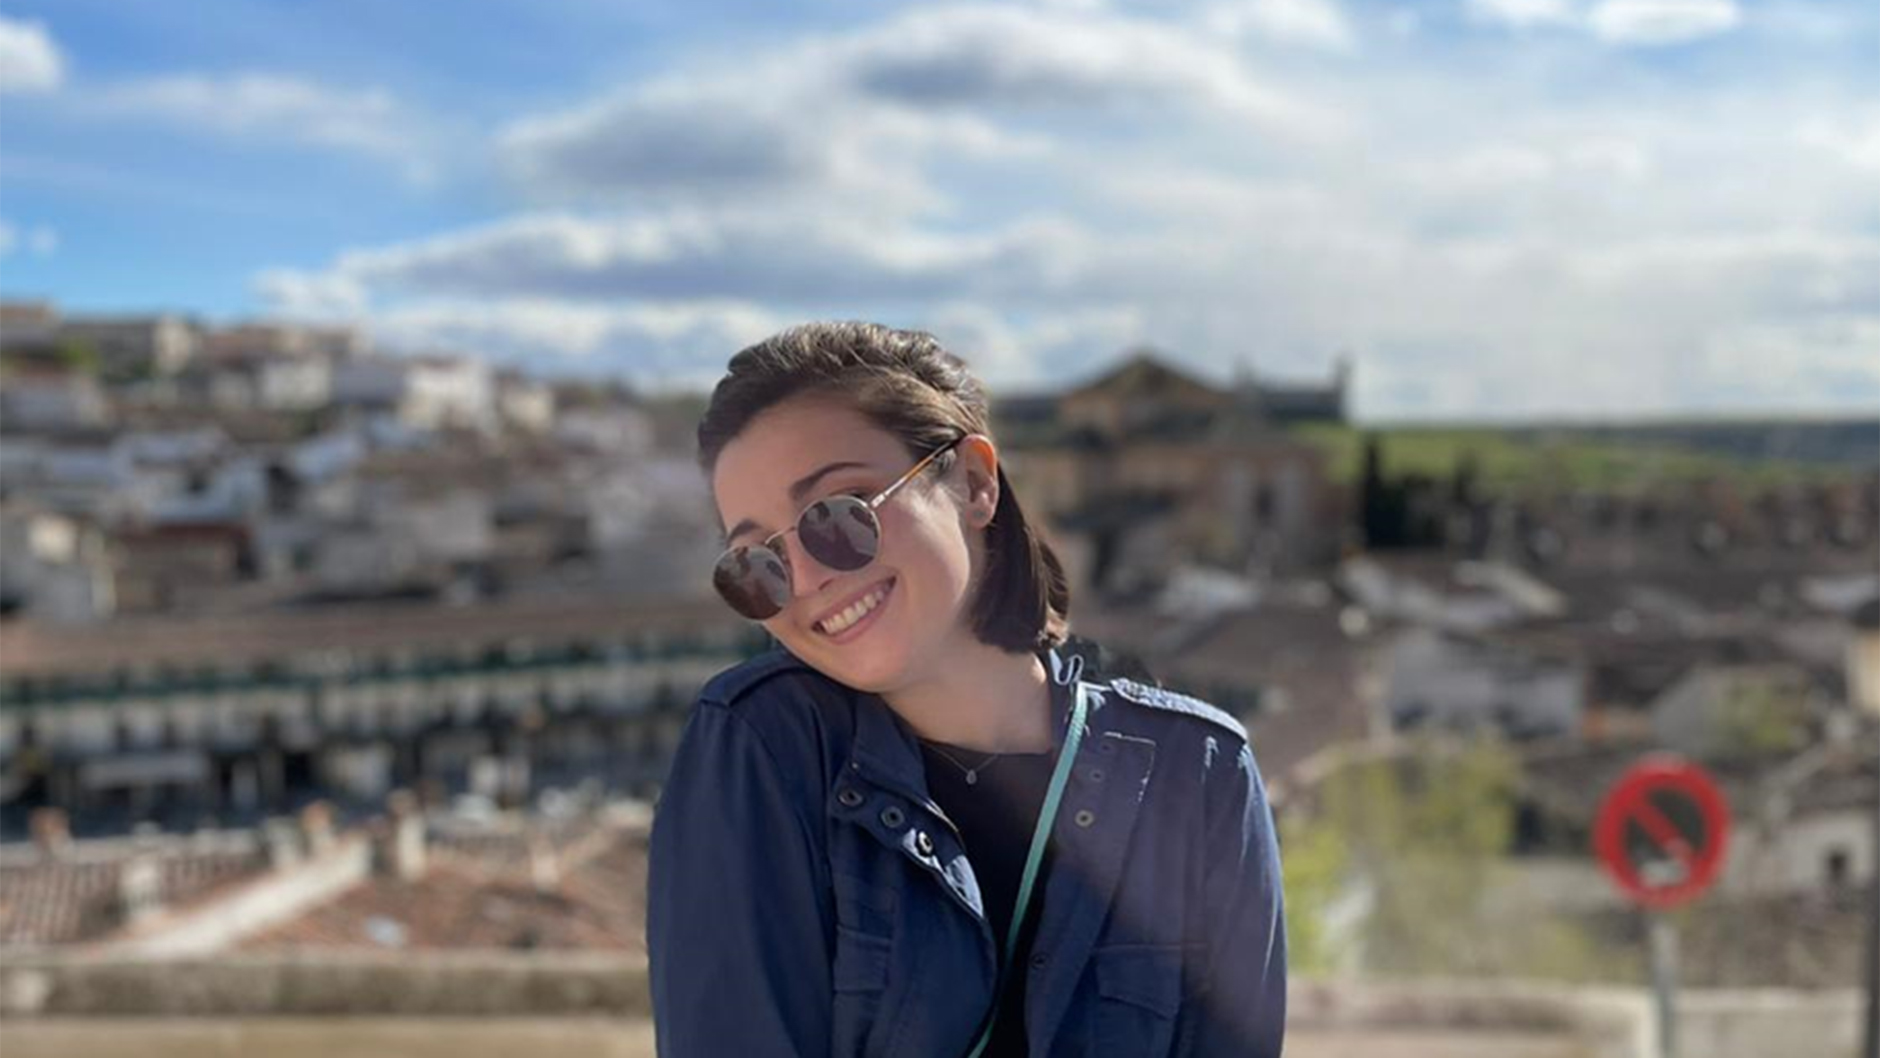 Sustainability Abroad student in Madrid